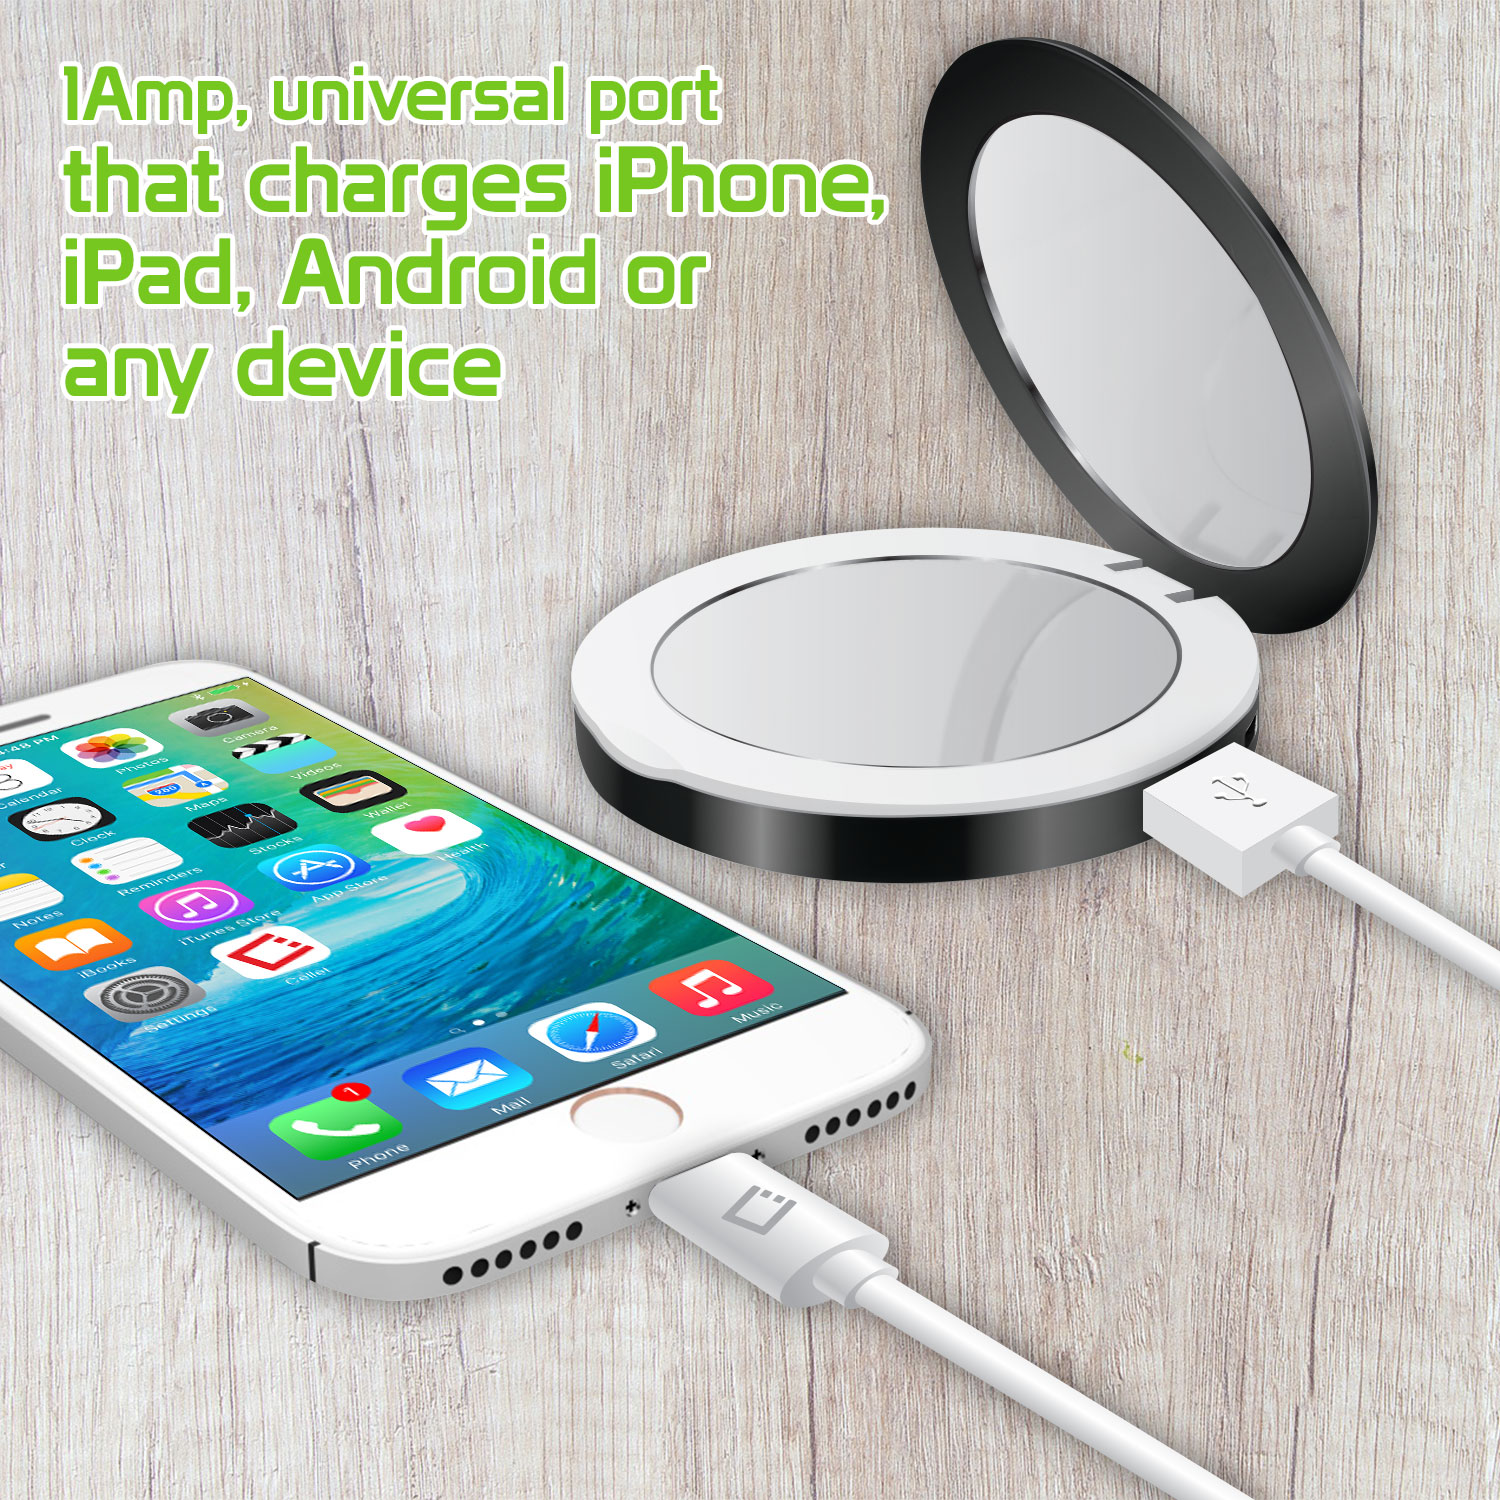 Cellet Compact Light Up Mirror powerbank, 3000mAh Battery for Apple,  Samsung, Google, & other Devices